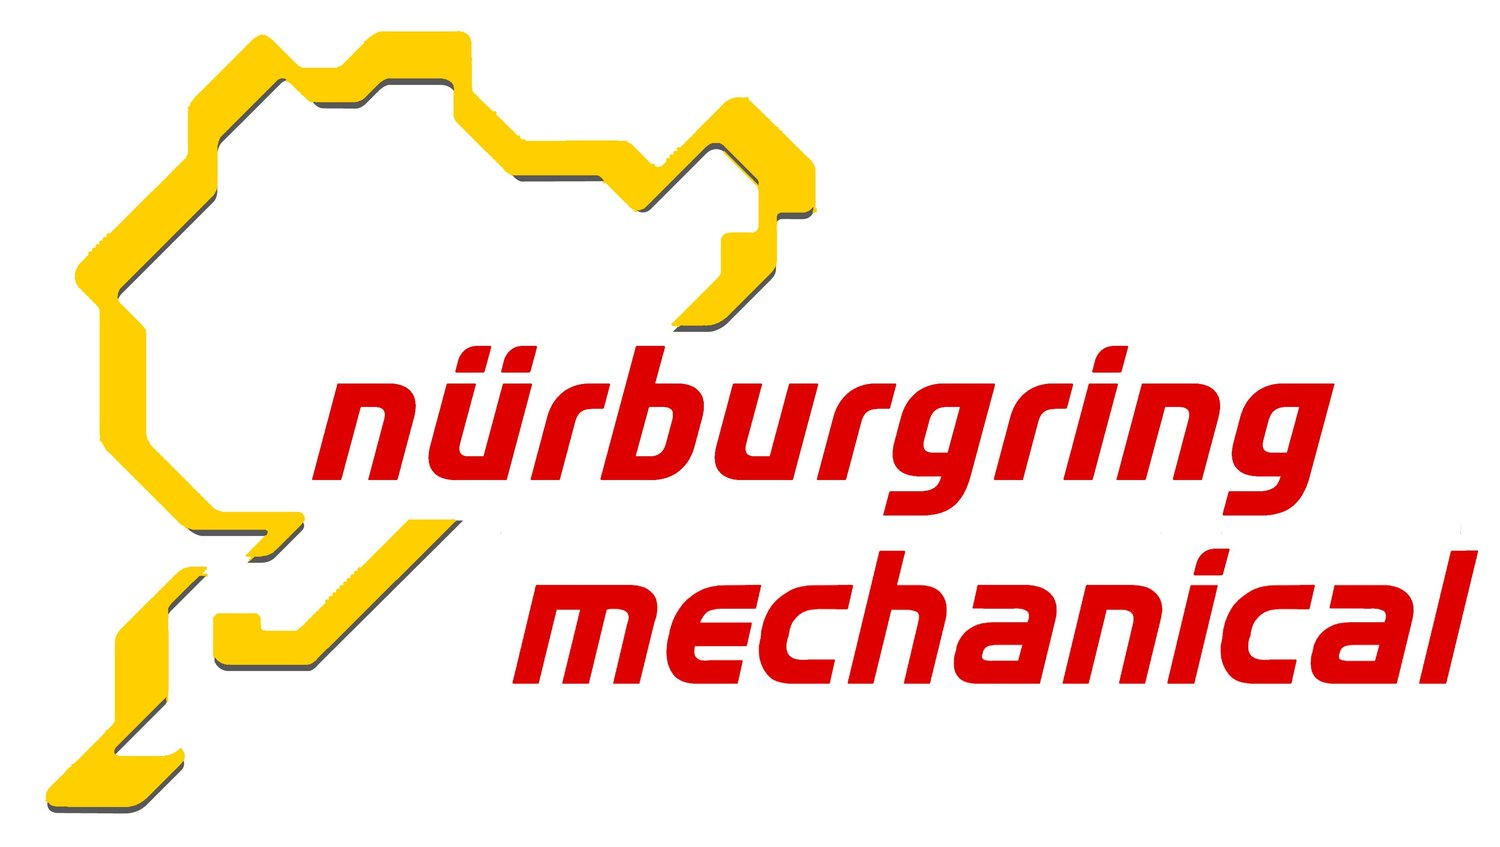 Nürburgring Mechanical